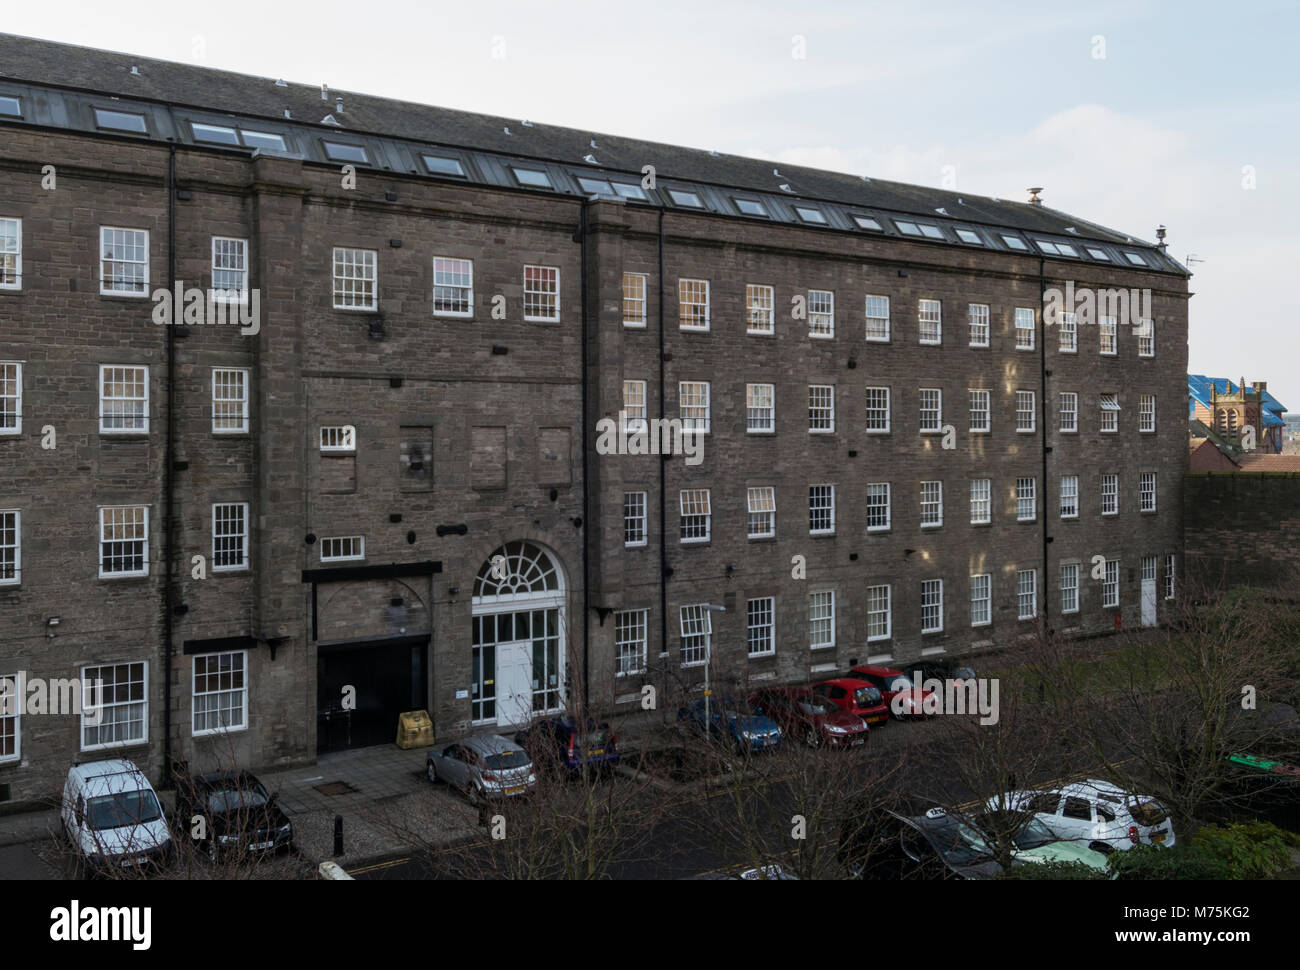 Once the largest textile mill in the world, Upper Dens Mill now provides modern housing in Dundee, Scotland, UK. - Stock Image